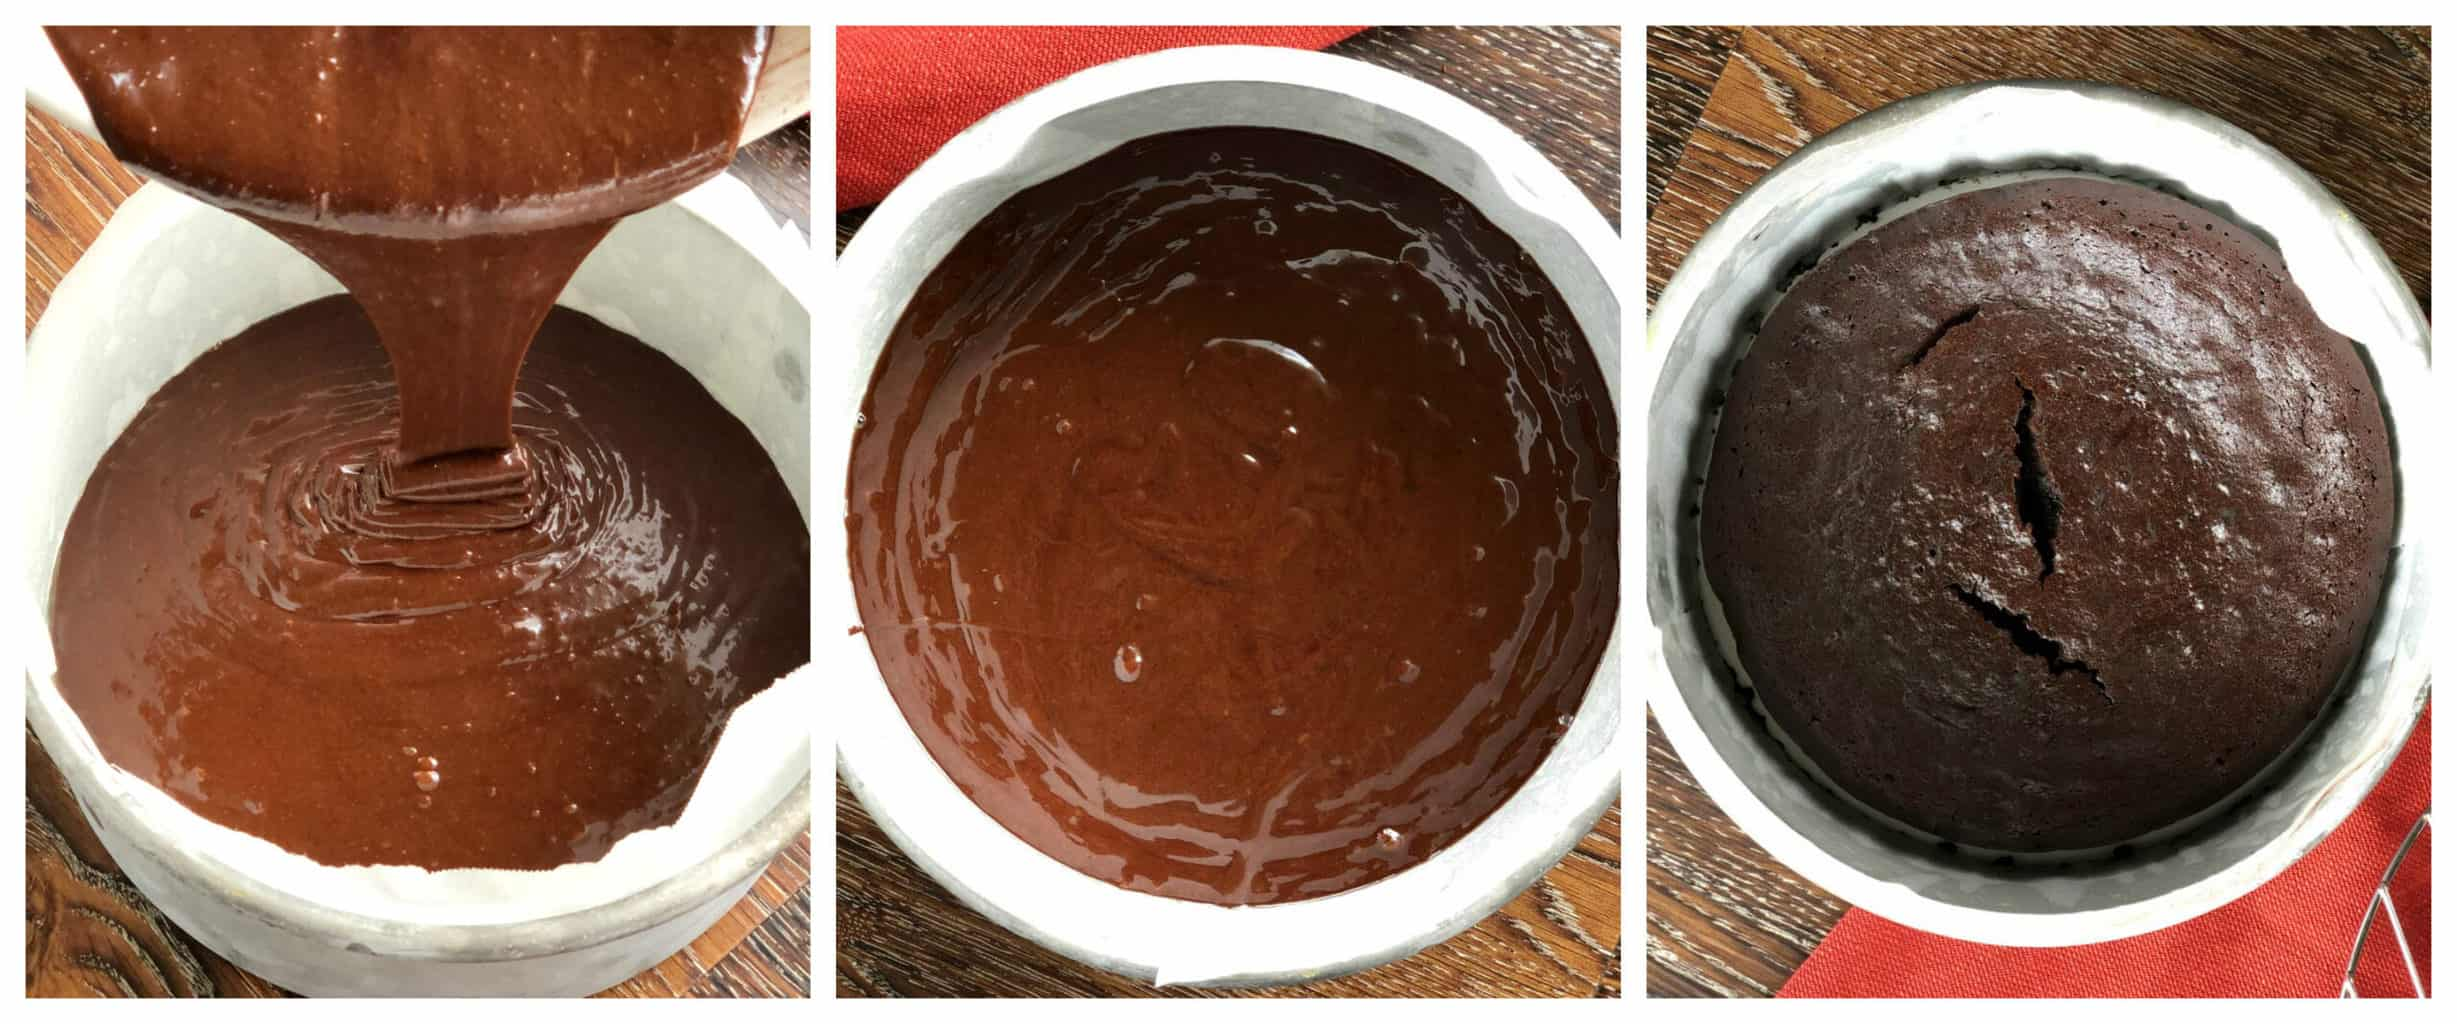 Easy Steps for Making Flourless Chocolate Cake